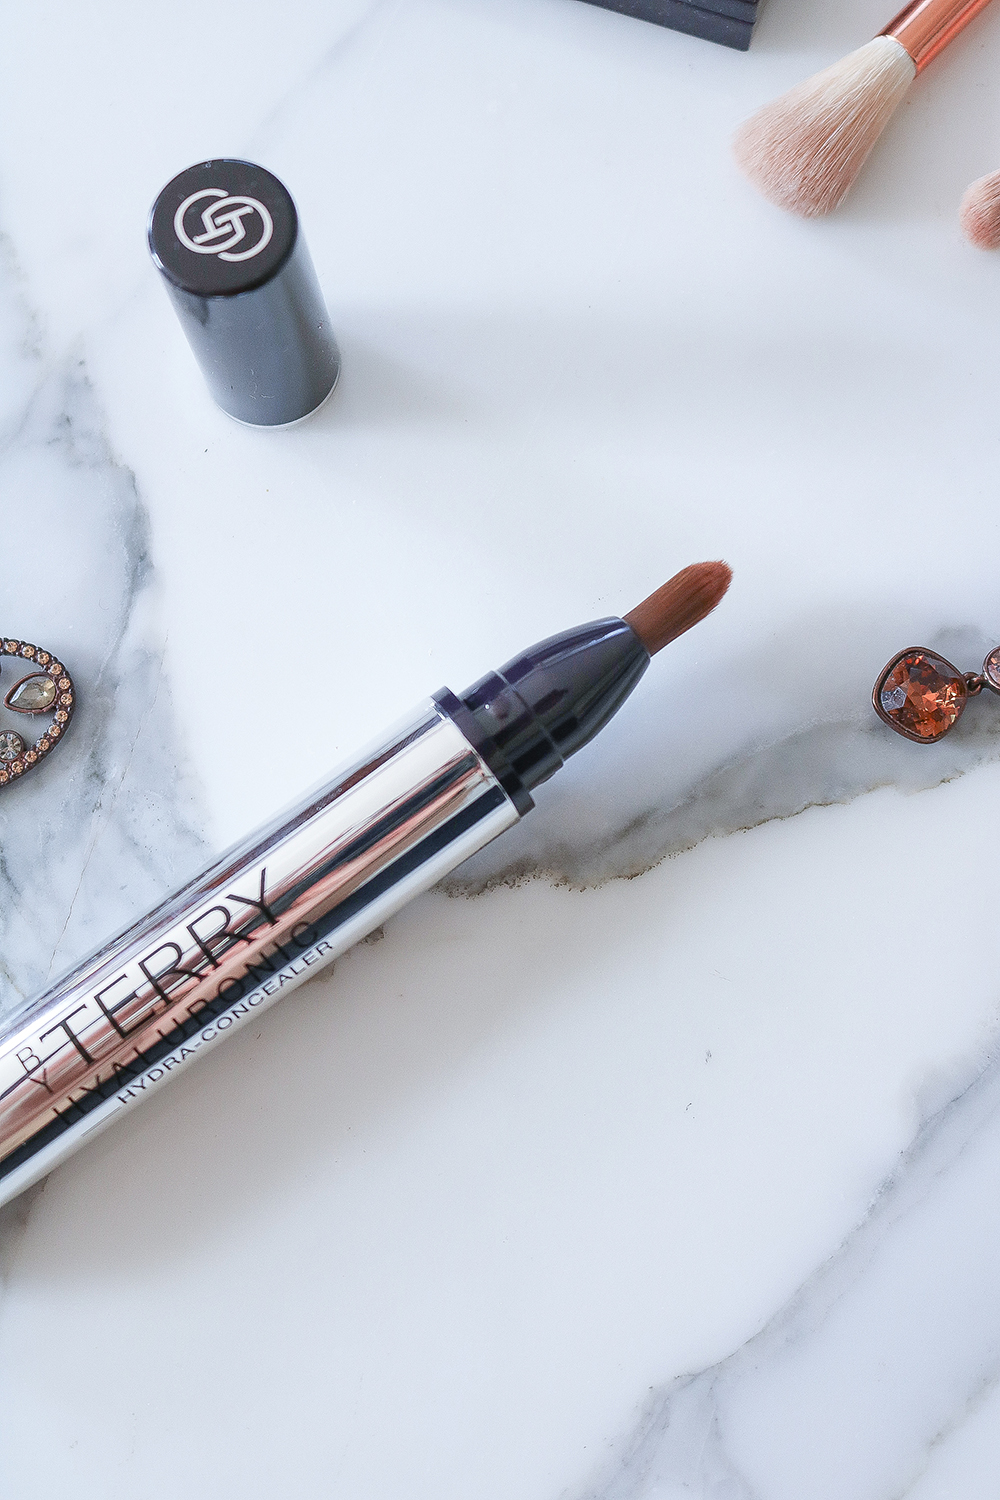 By Terry Hyaluronic Concealer Review I DreaminLace.com #bbloggers #makeup #makeupaddict